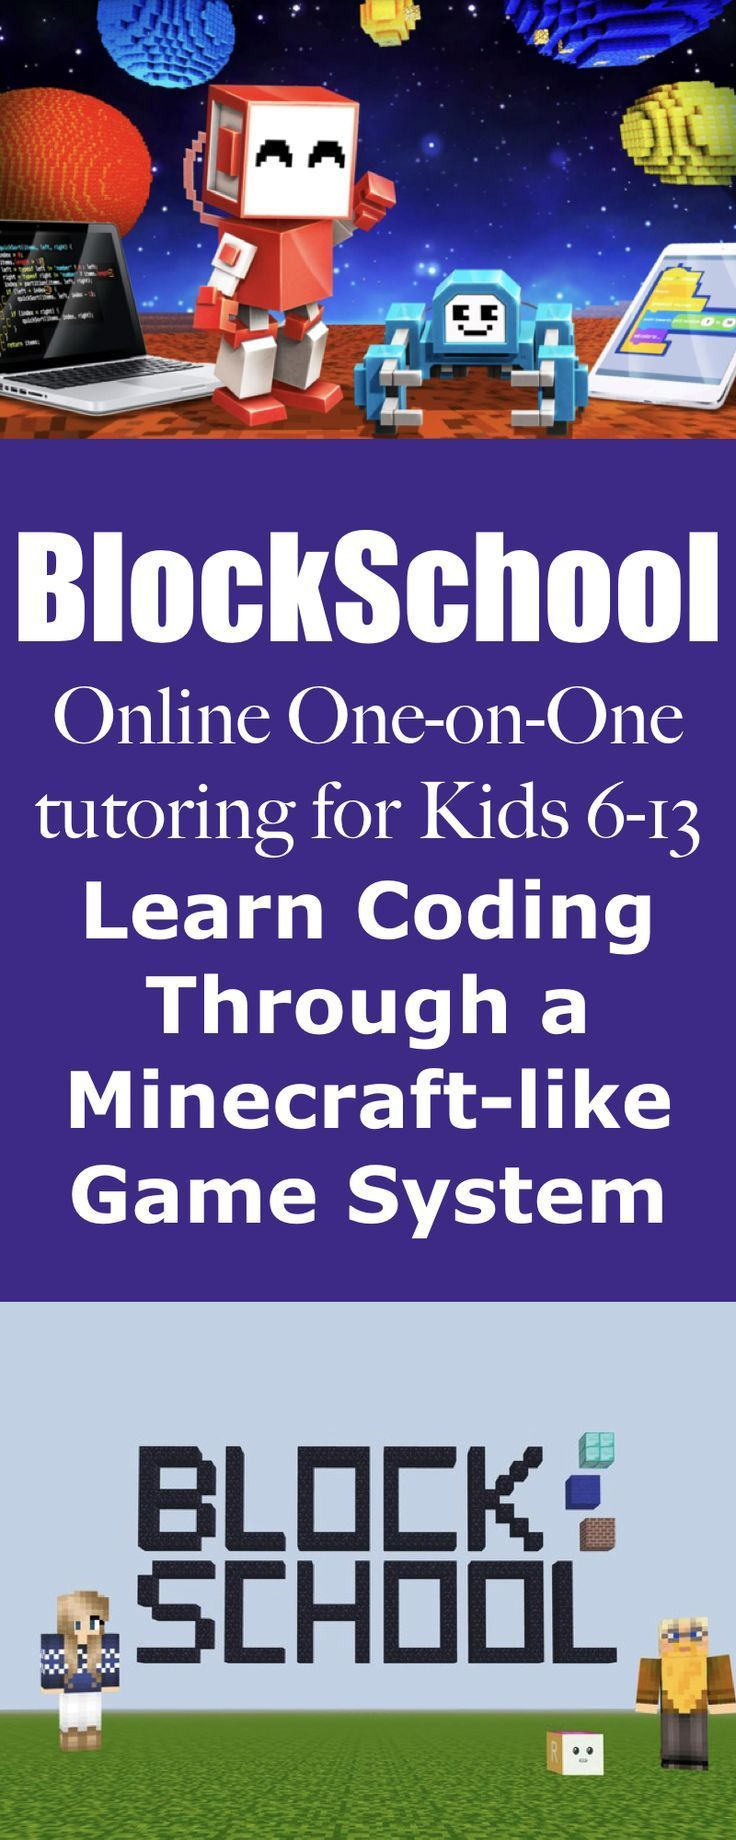 "BlockSchool Review:  Coding is a real-world skill needed for the 21st century. Even if your student never intends to write a ""real"" line of code, the skills learned in coding translate into important concepts such as logic, consequences, if/then reasoning and high-level executive brain function. BlockSchool can transform even the most reluctant learners into coding ninjas… Don't worry, we'll let them believe that it's just another video game! #onlineeducation #BlockSchoolReview #homeschool"